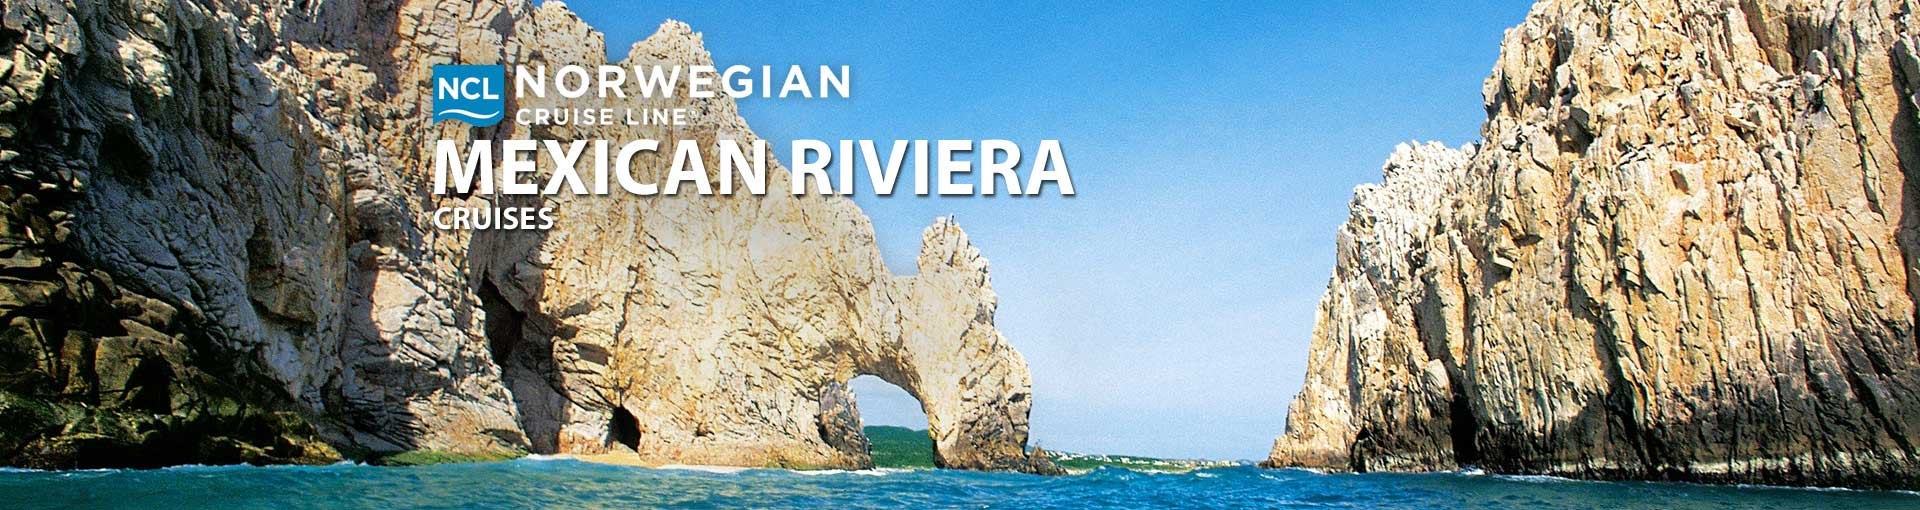 Norwegian Mexican Riviera Cruises 2019 And 2020 Mexican